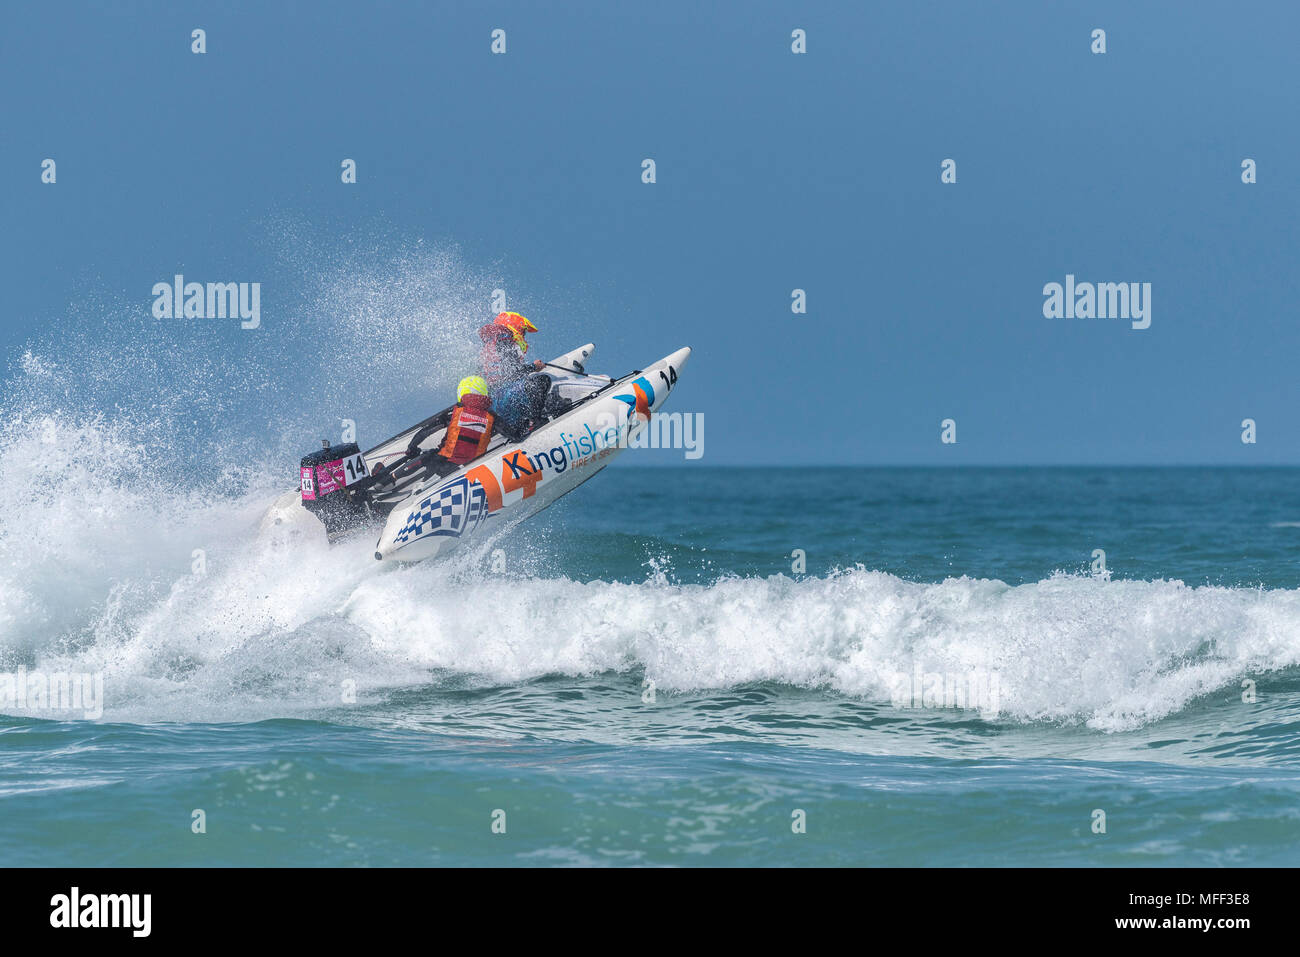 ThunderCat Racing at Fistral in Newquay in Cornwall. - Stock Image